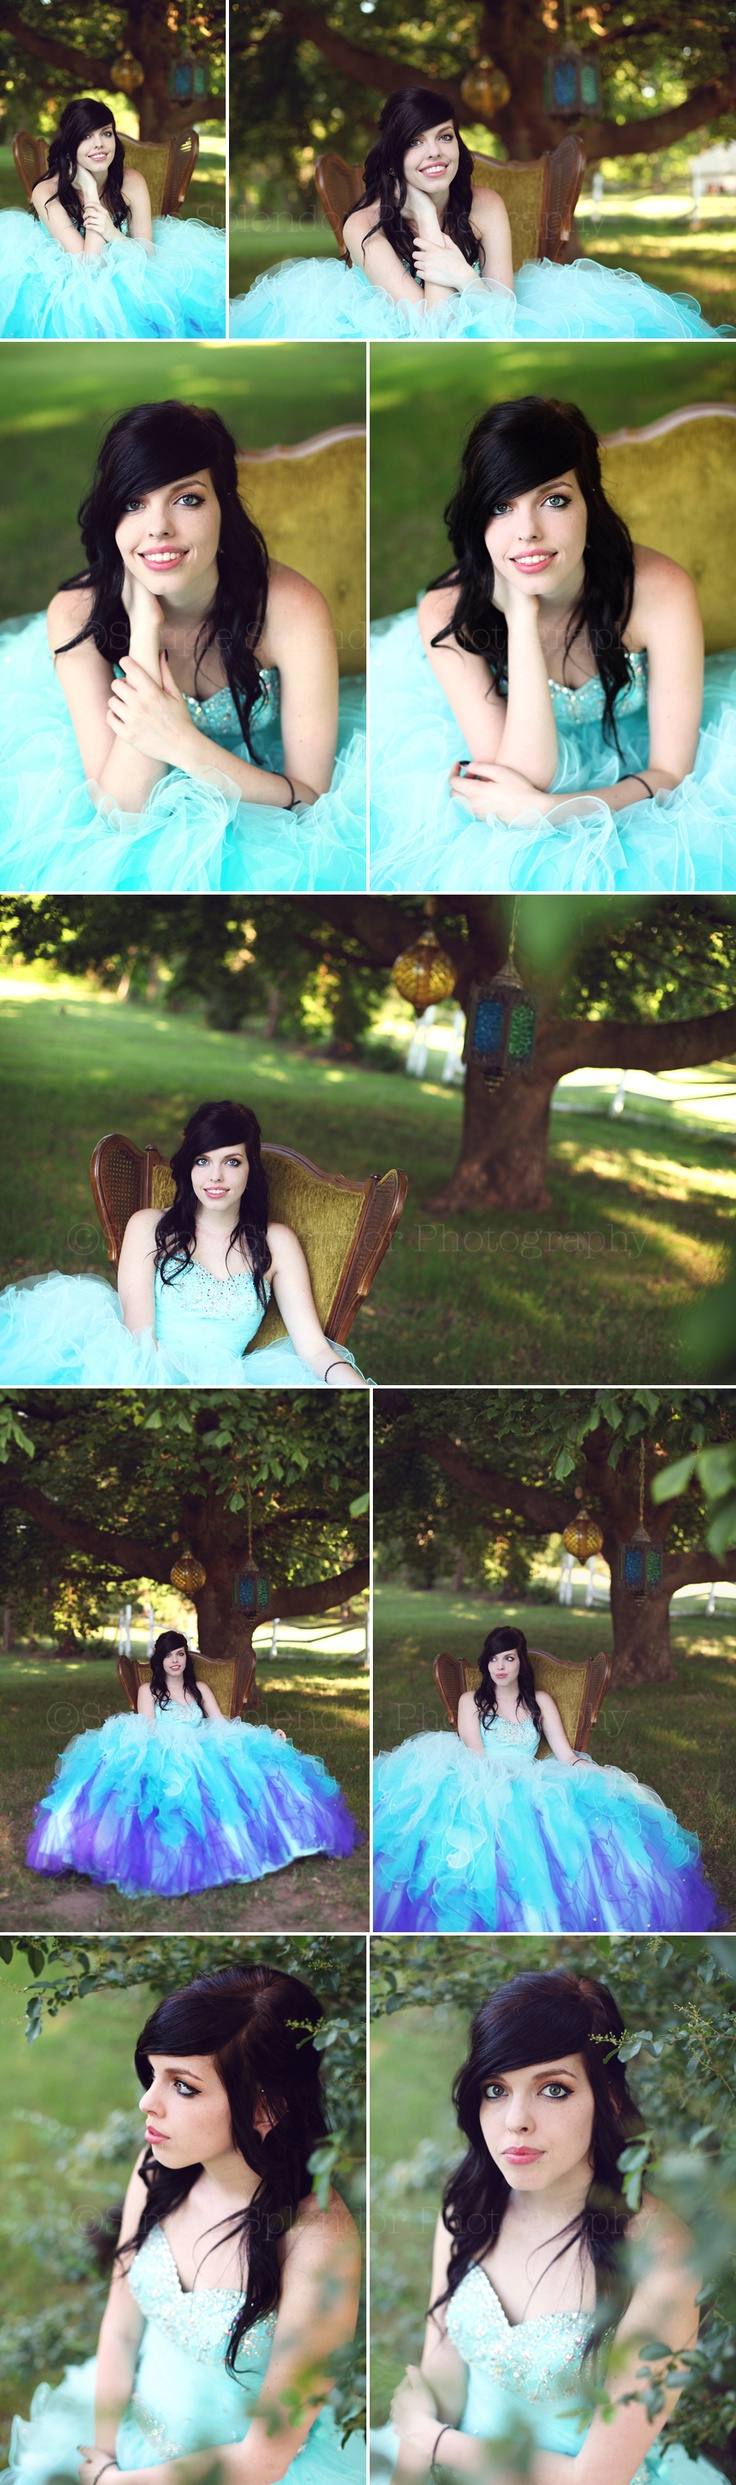 High School Senior girl prom dress Simple Splendor Photography